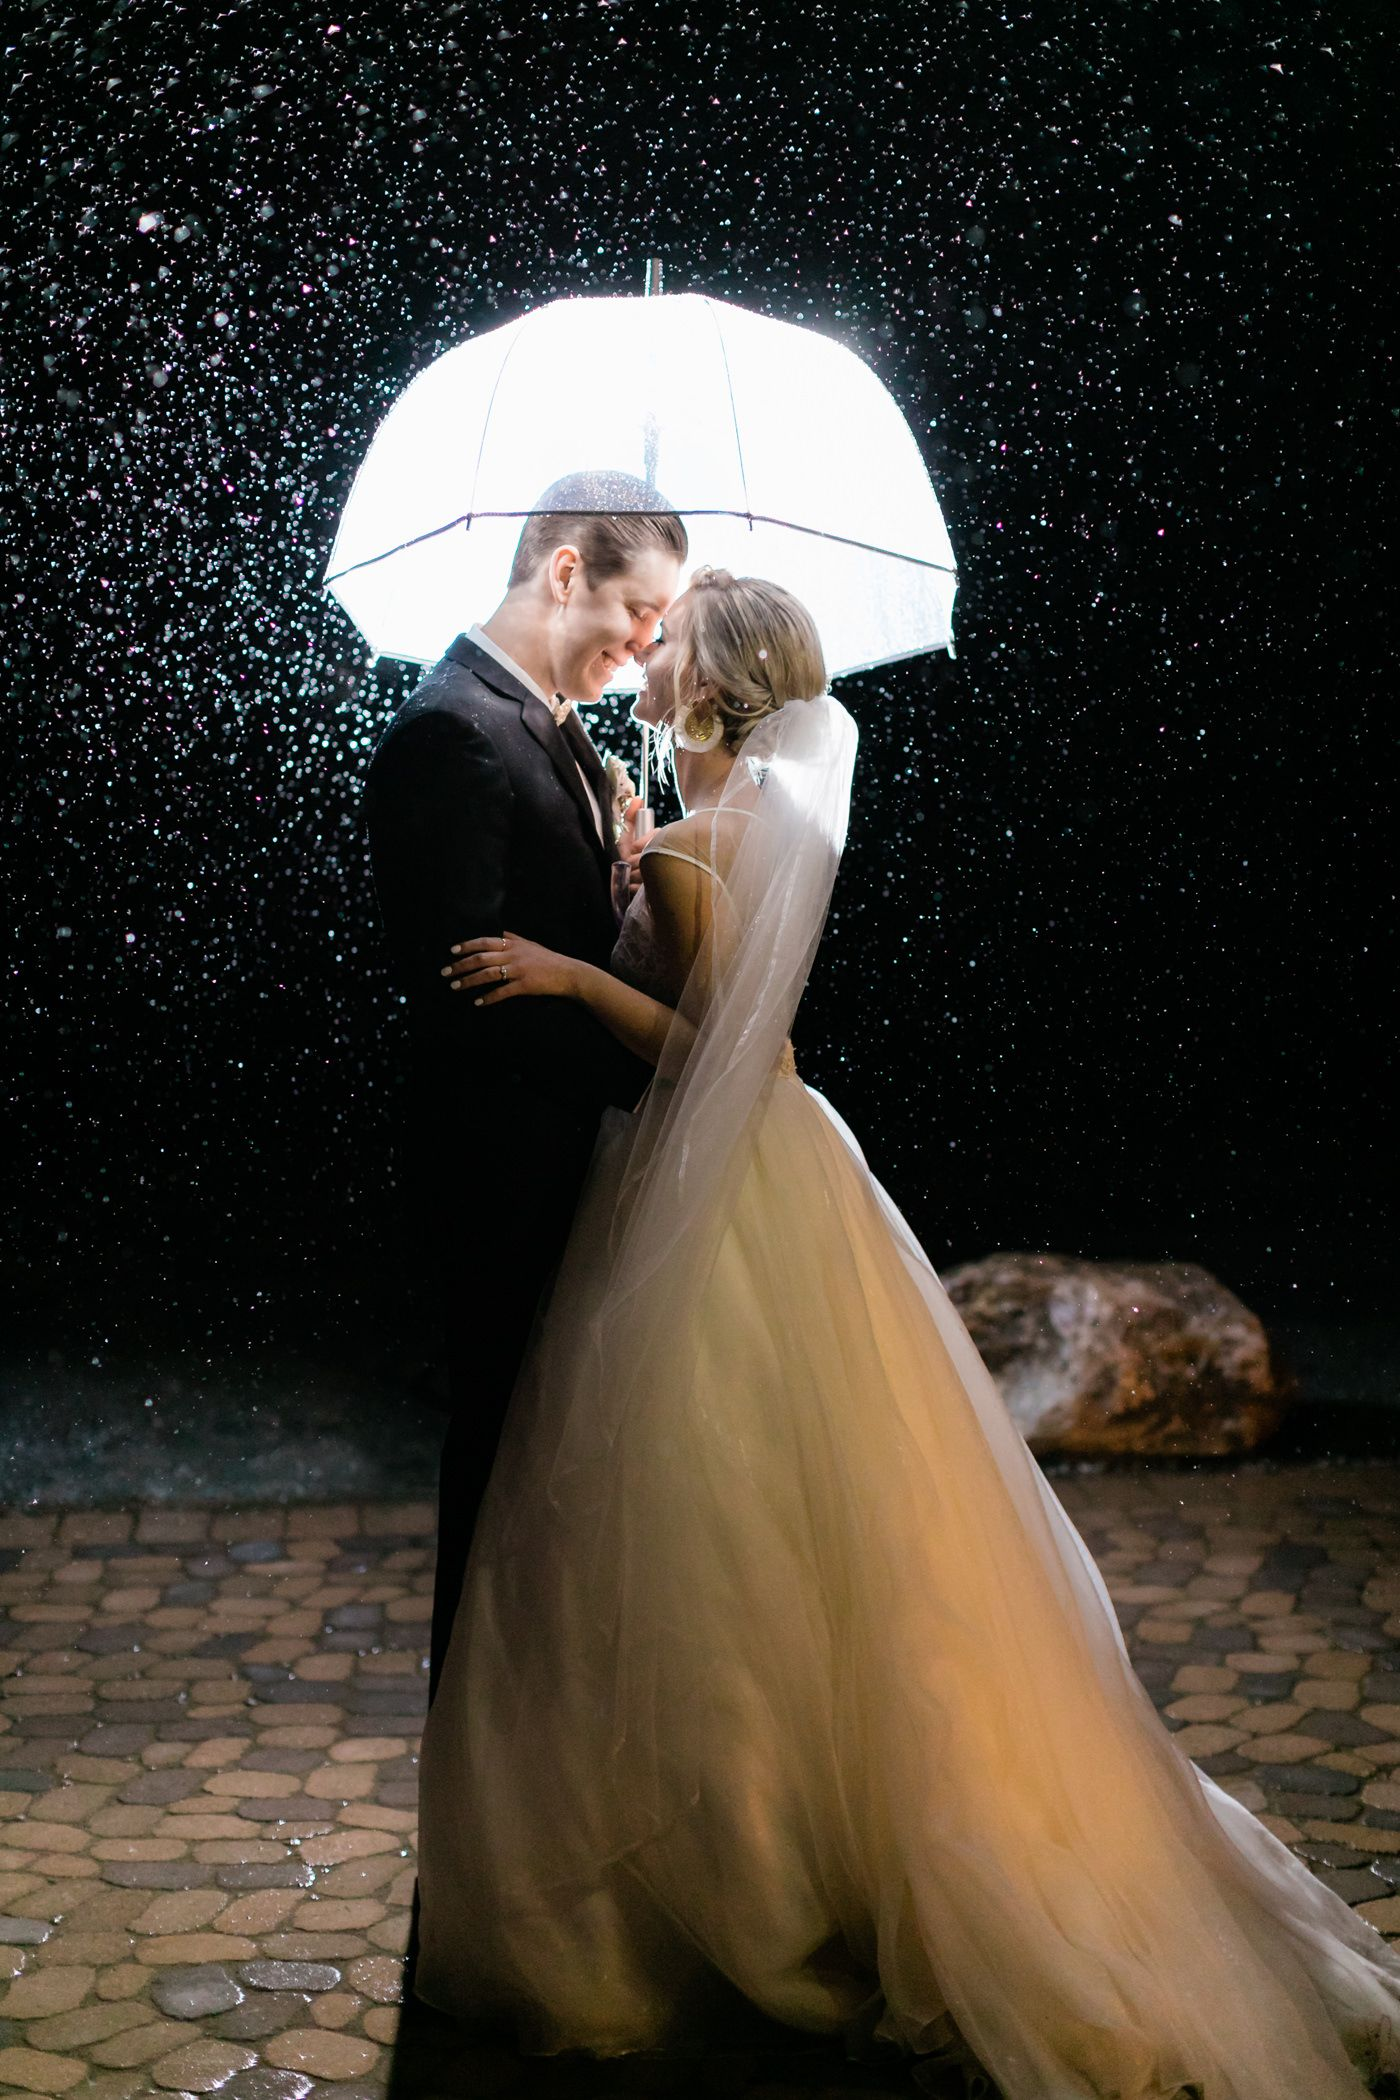 The Rainy Wedding Day Photo That Caused All The Raucous On Reddit Tayler Enerle Photography Rainy Wedding Photos Rain Wedding Photos Rain Wedding